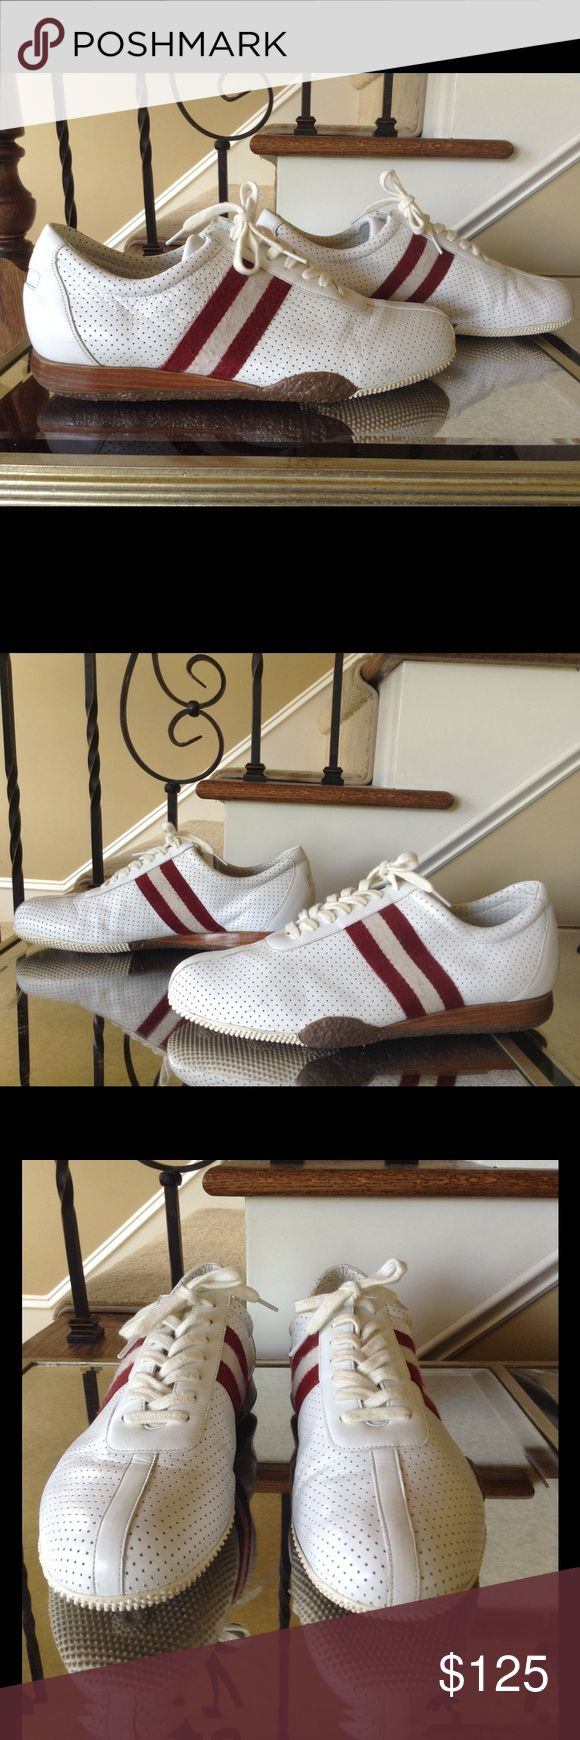 Men's Bally sneakers Used, good condition men's Bally sneakers Bally Shoes